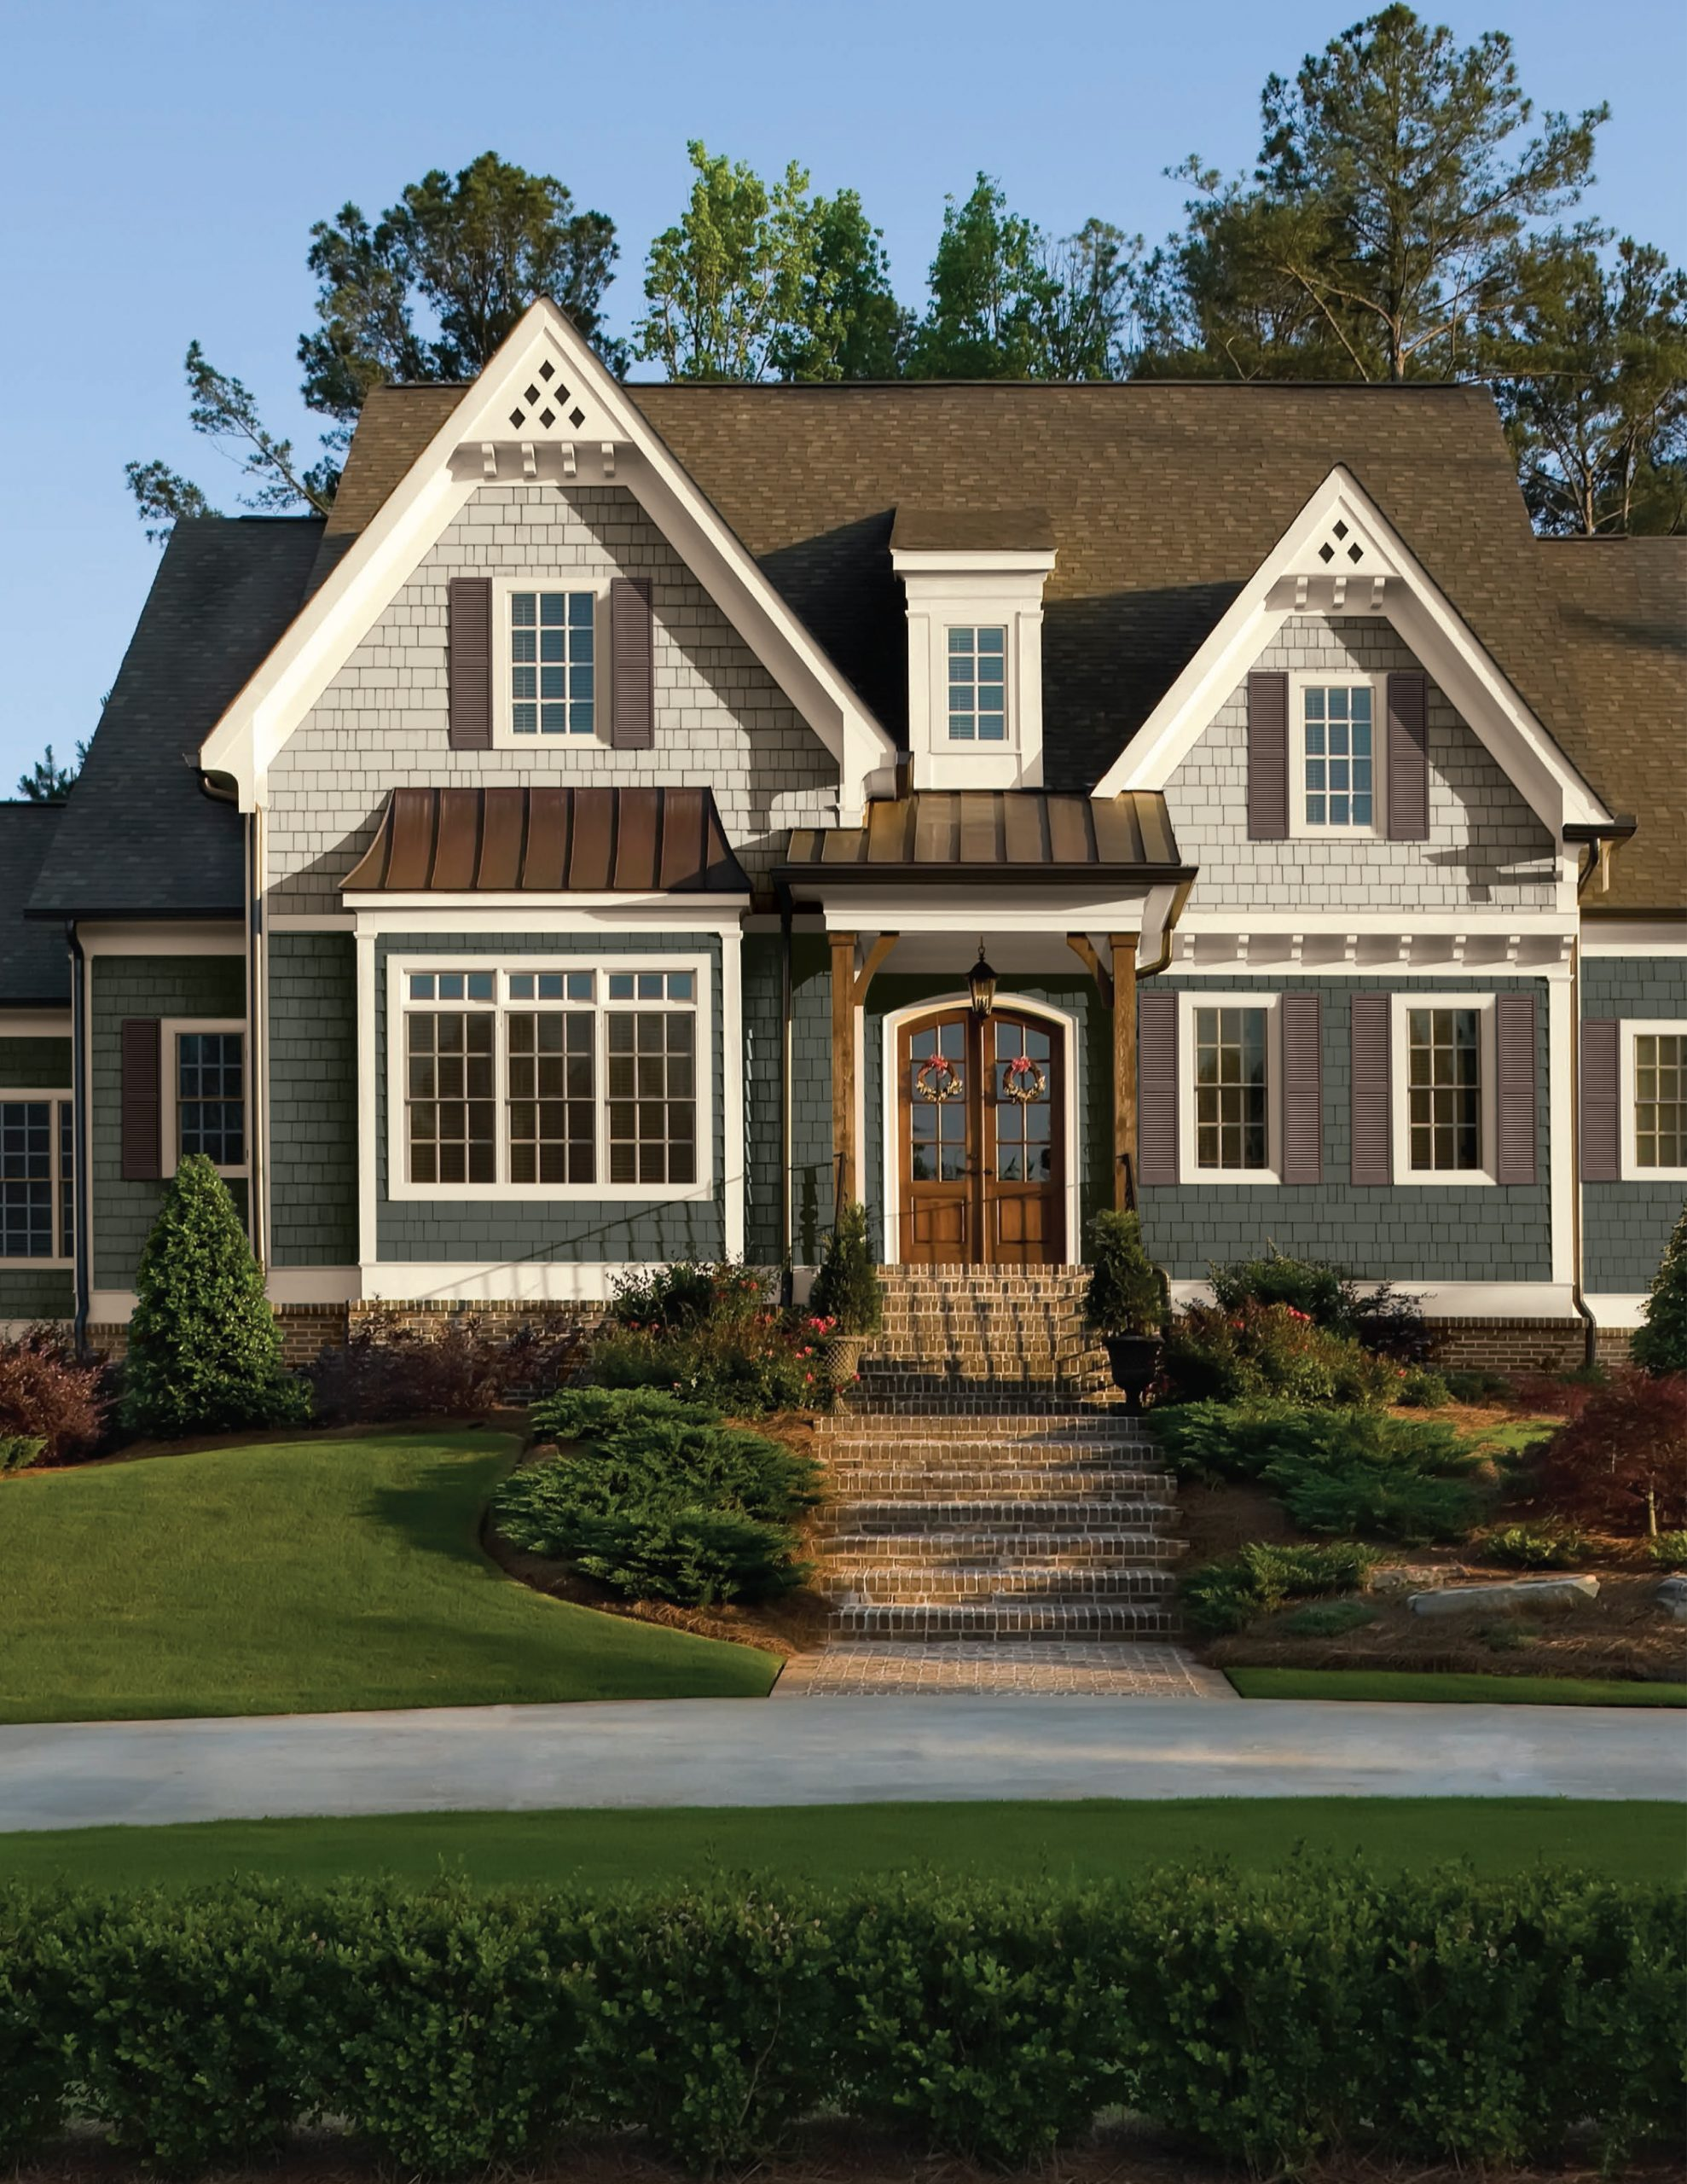 Two toned white and blue gray siding colors scheme with black roofing shingles and black metal accents. Real wood columns. White trim. Stained brown real wood front door. Red brick veneer and steps.